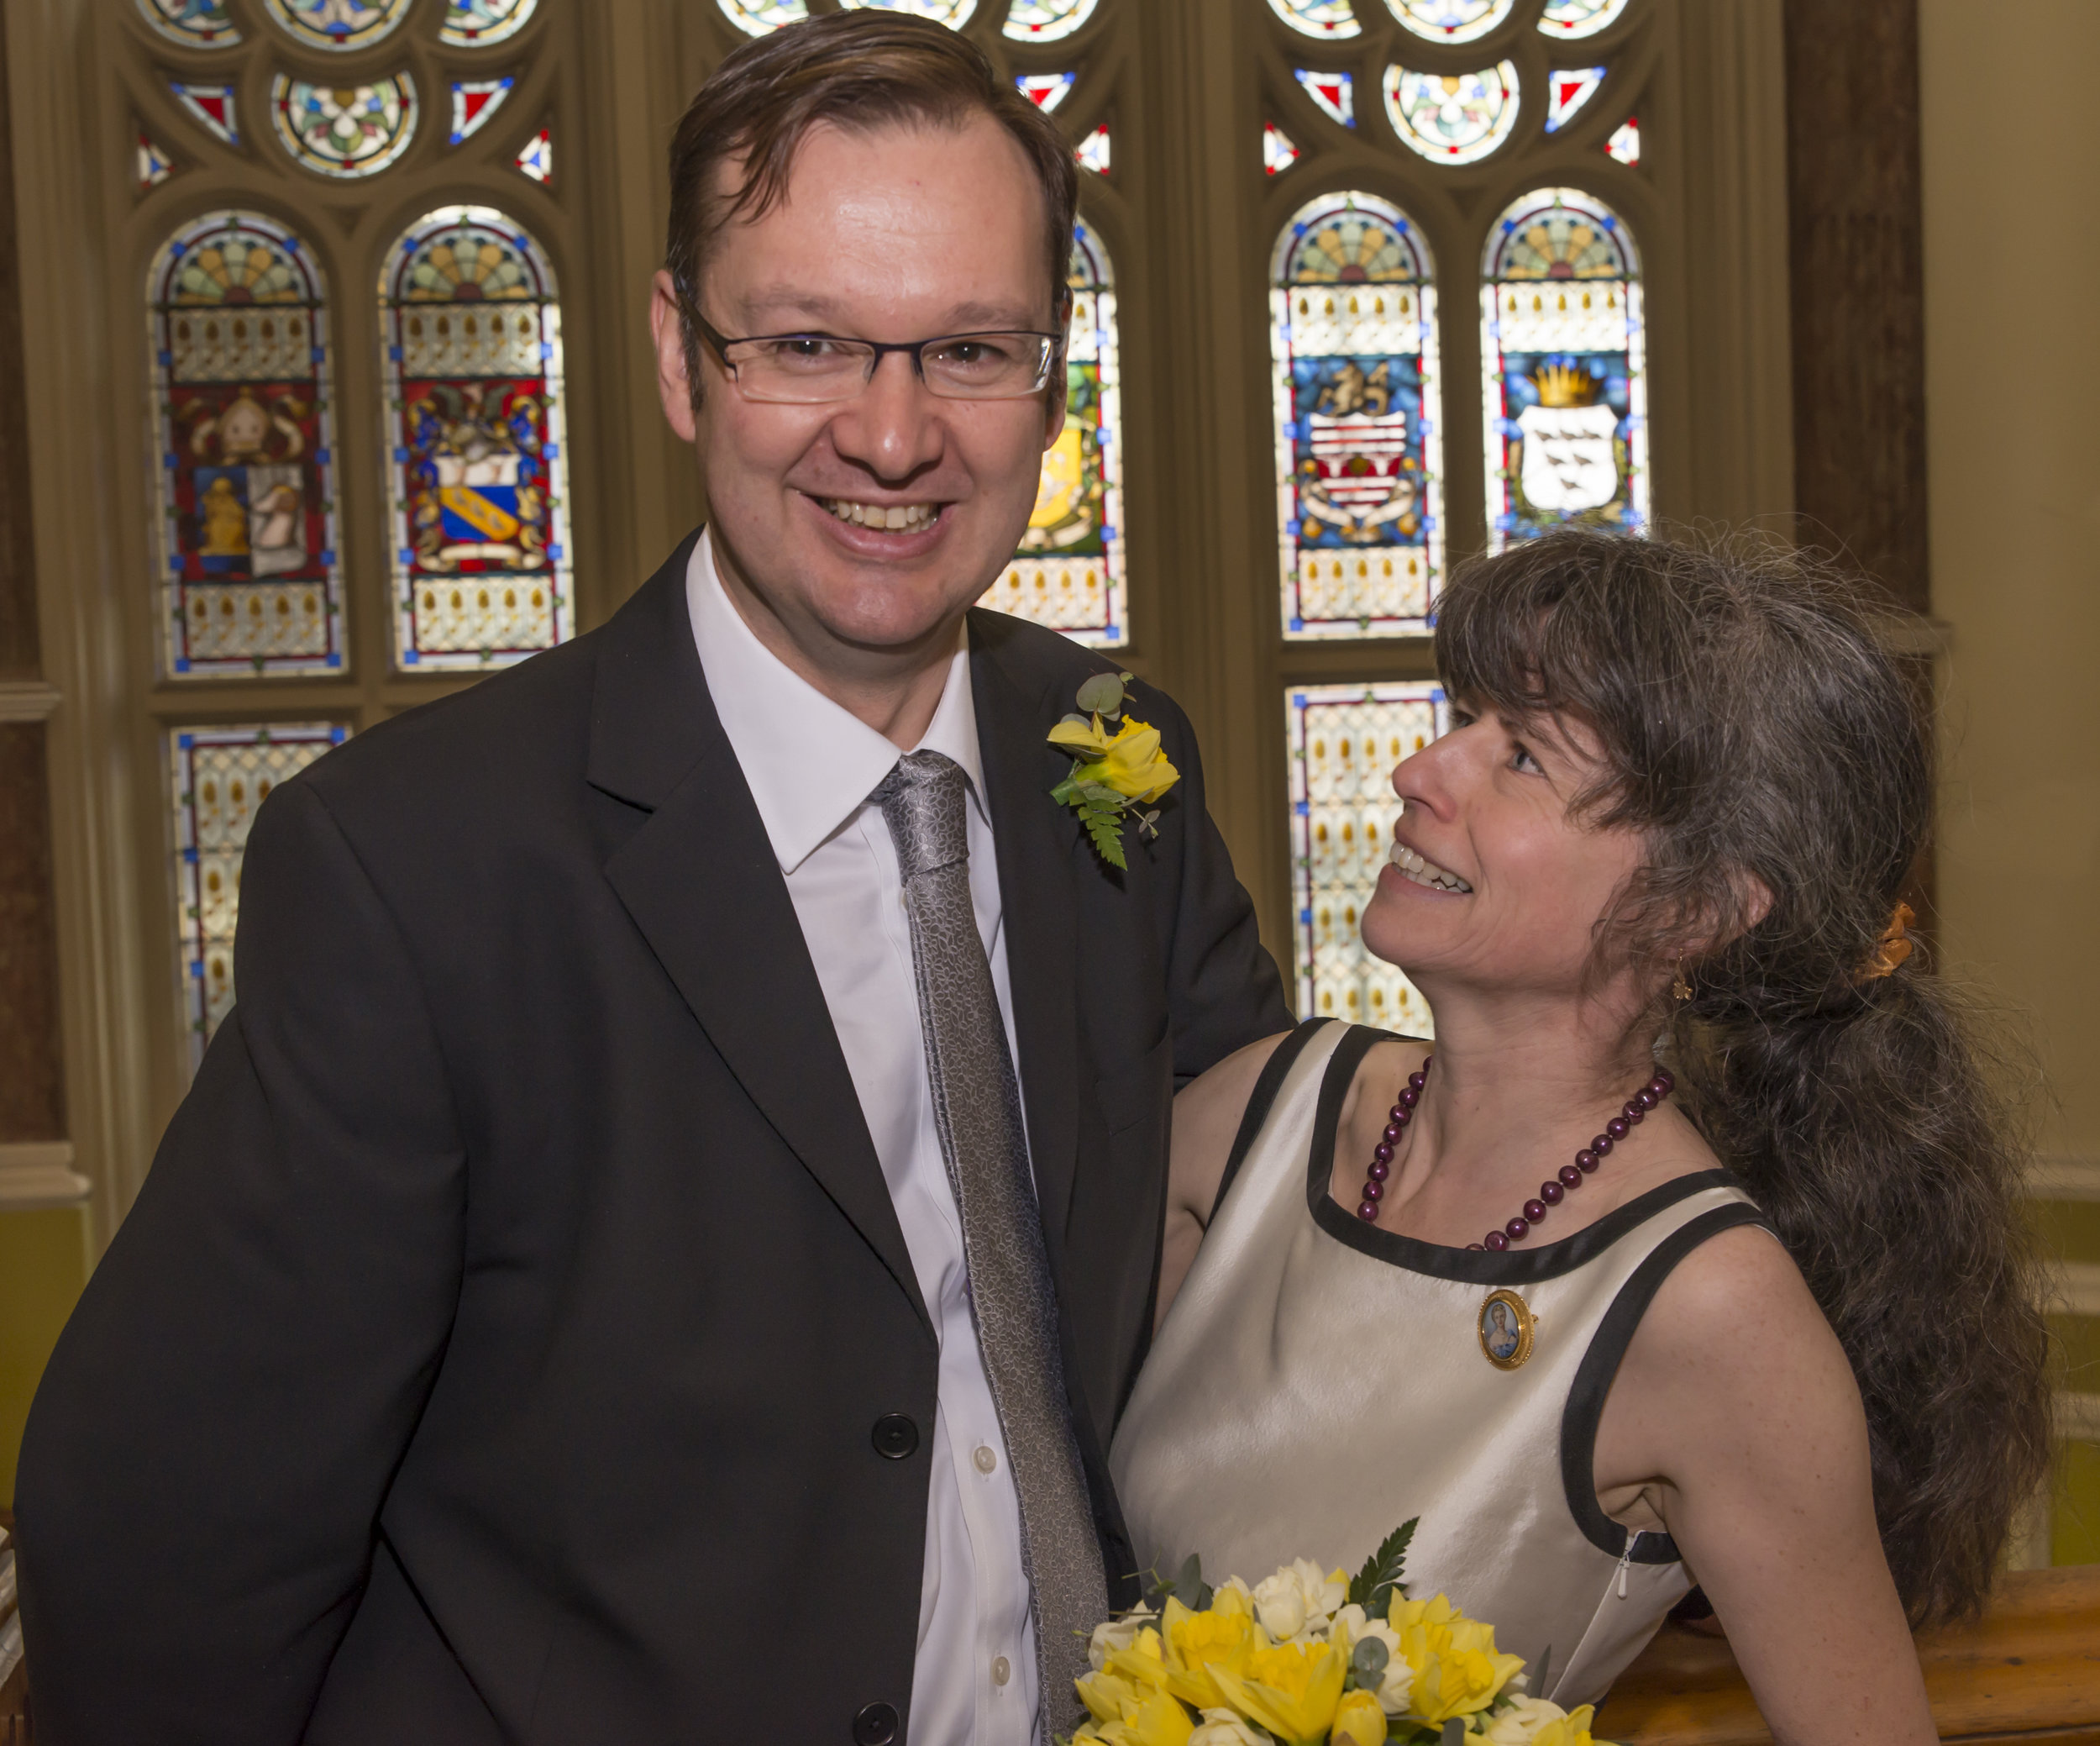 Wedding Photography - Hastings, Town Hall 7